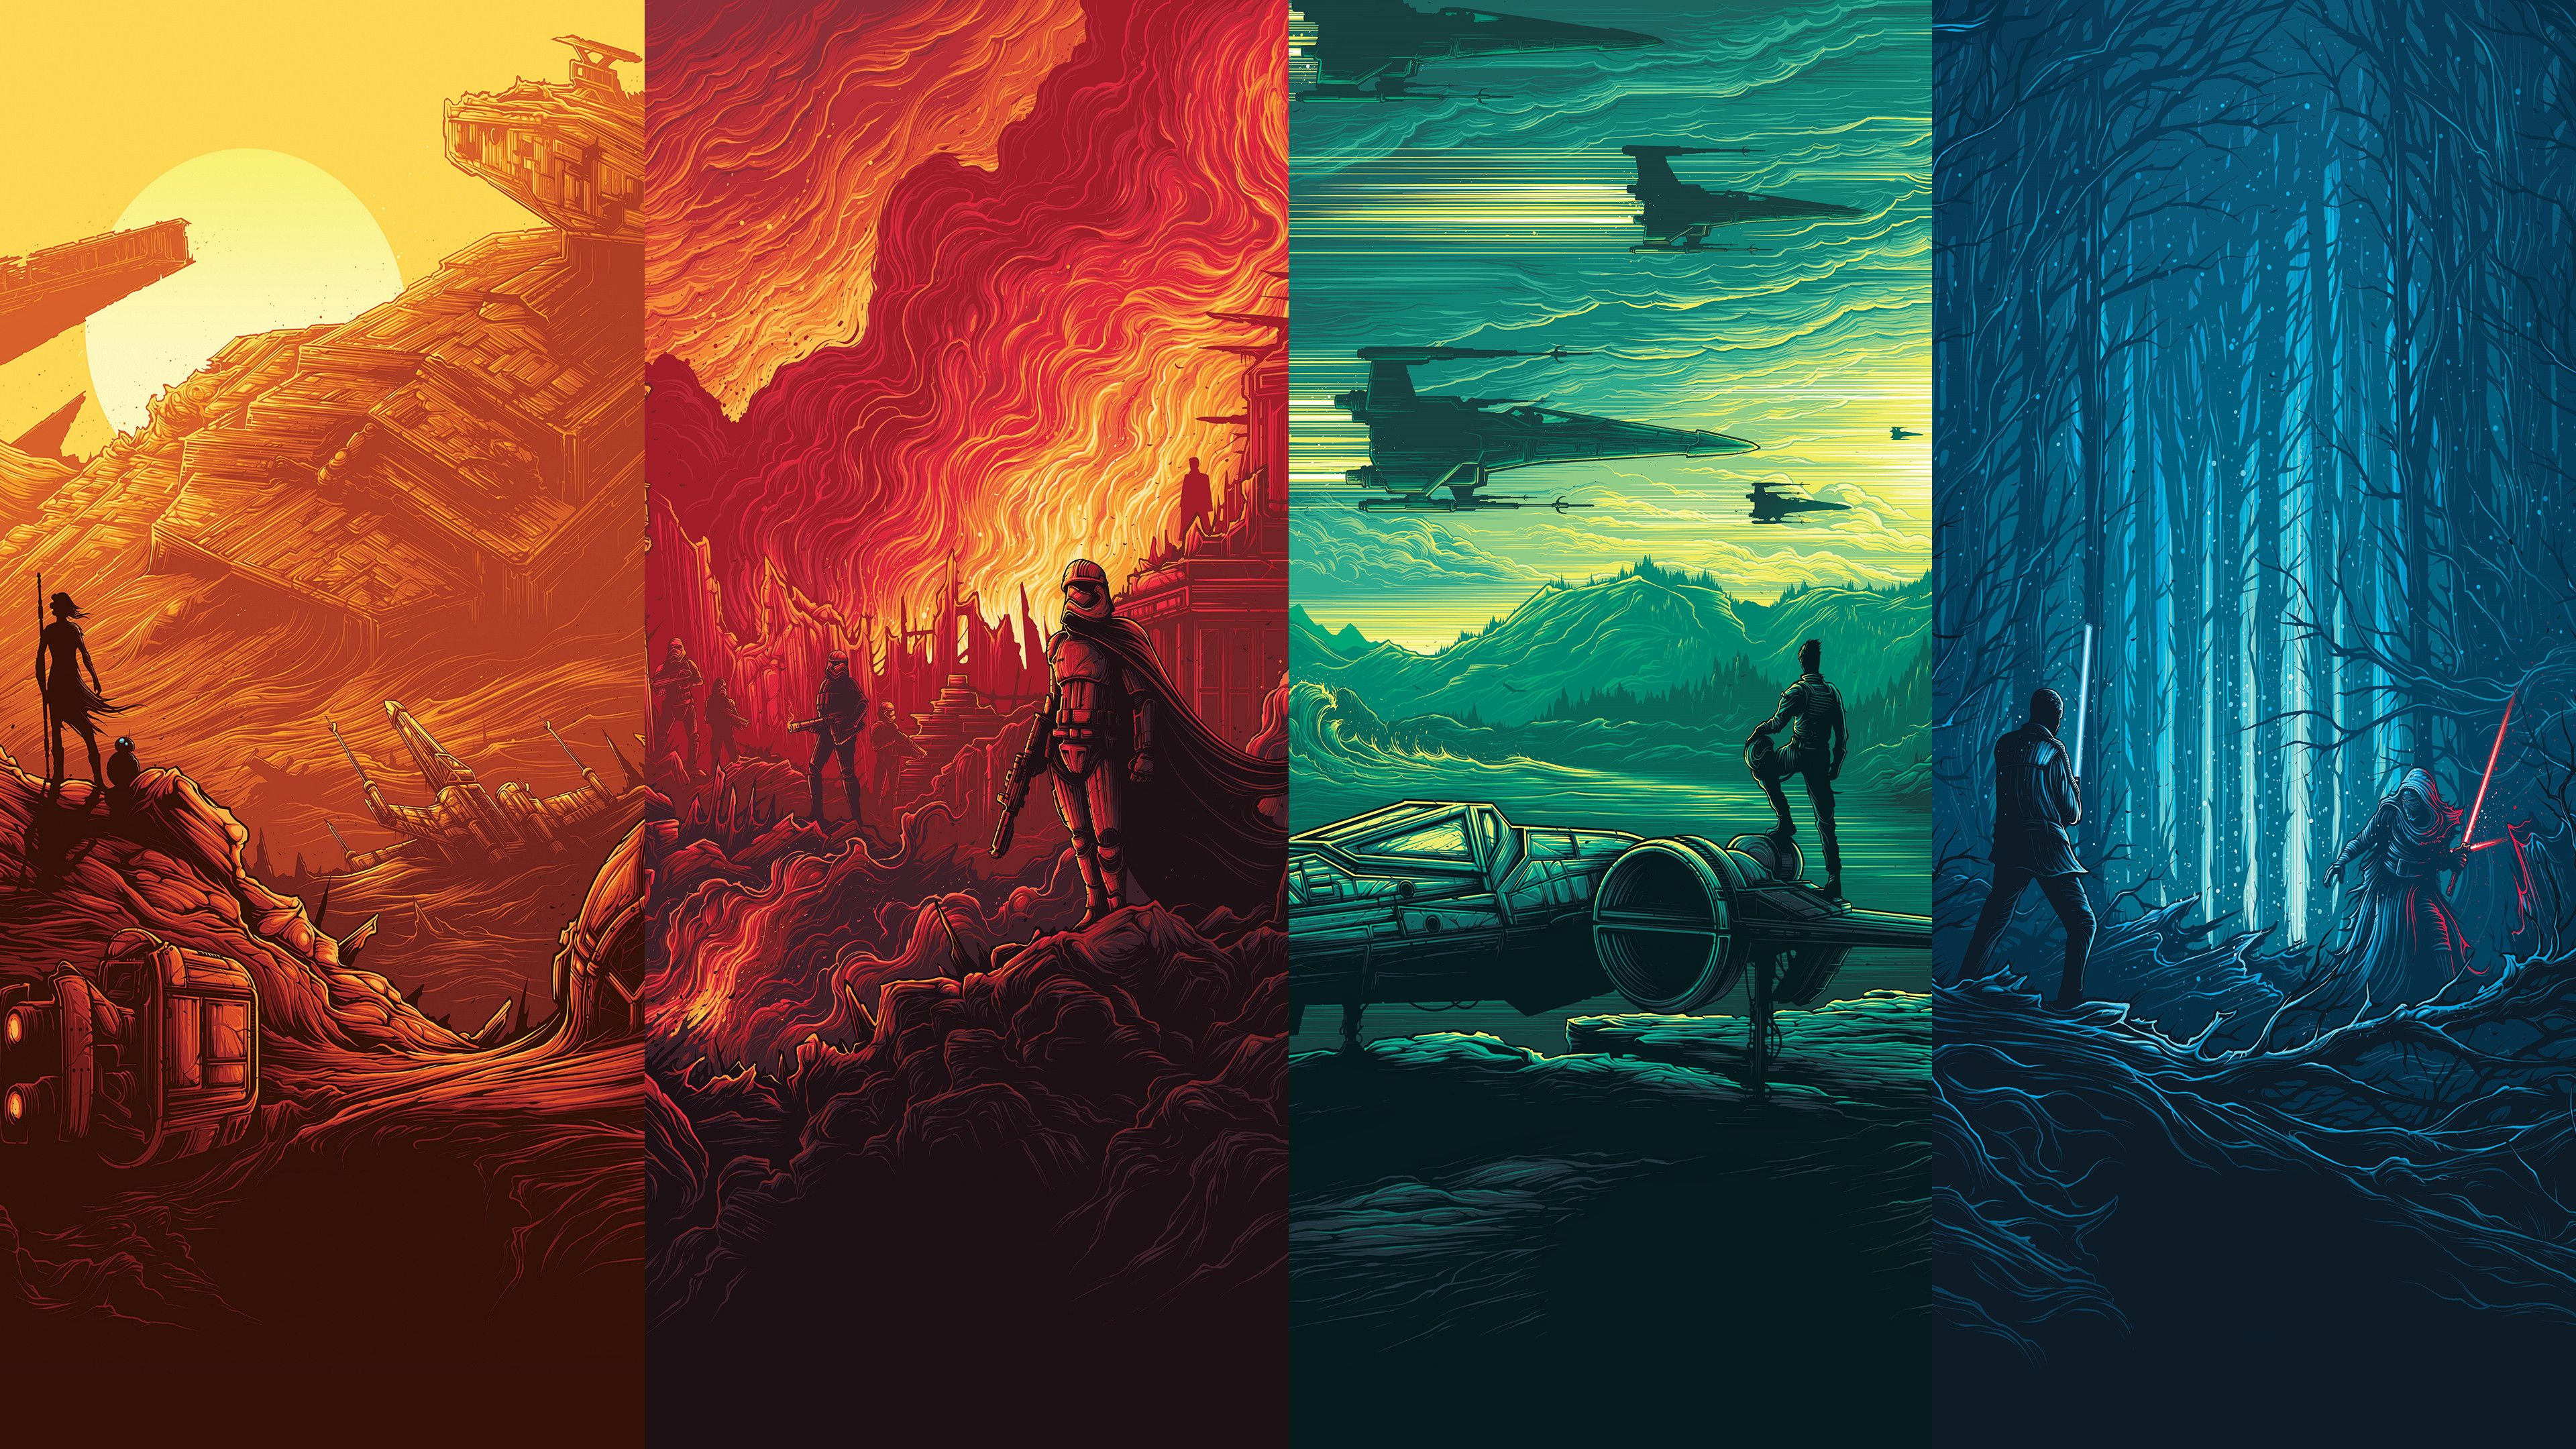 Star Wars Backgrounds - Wallpaper Cave